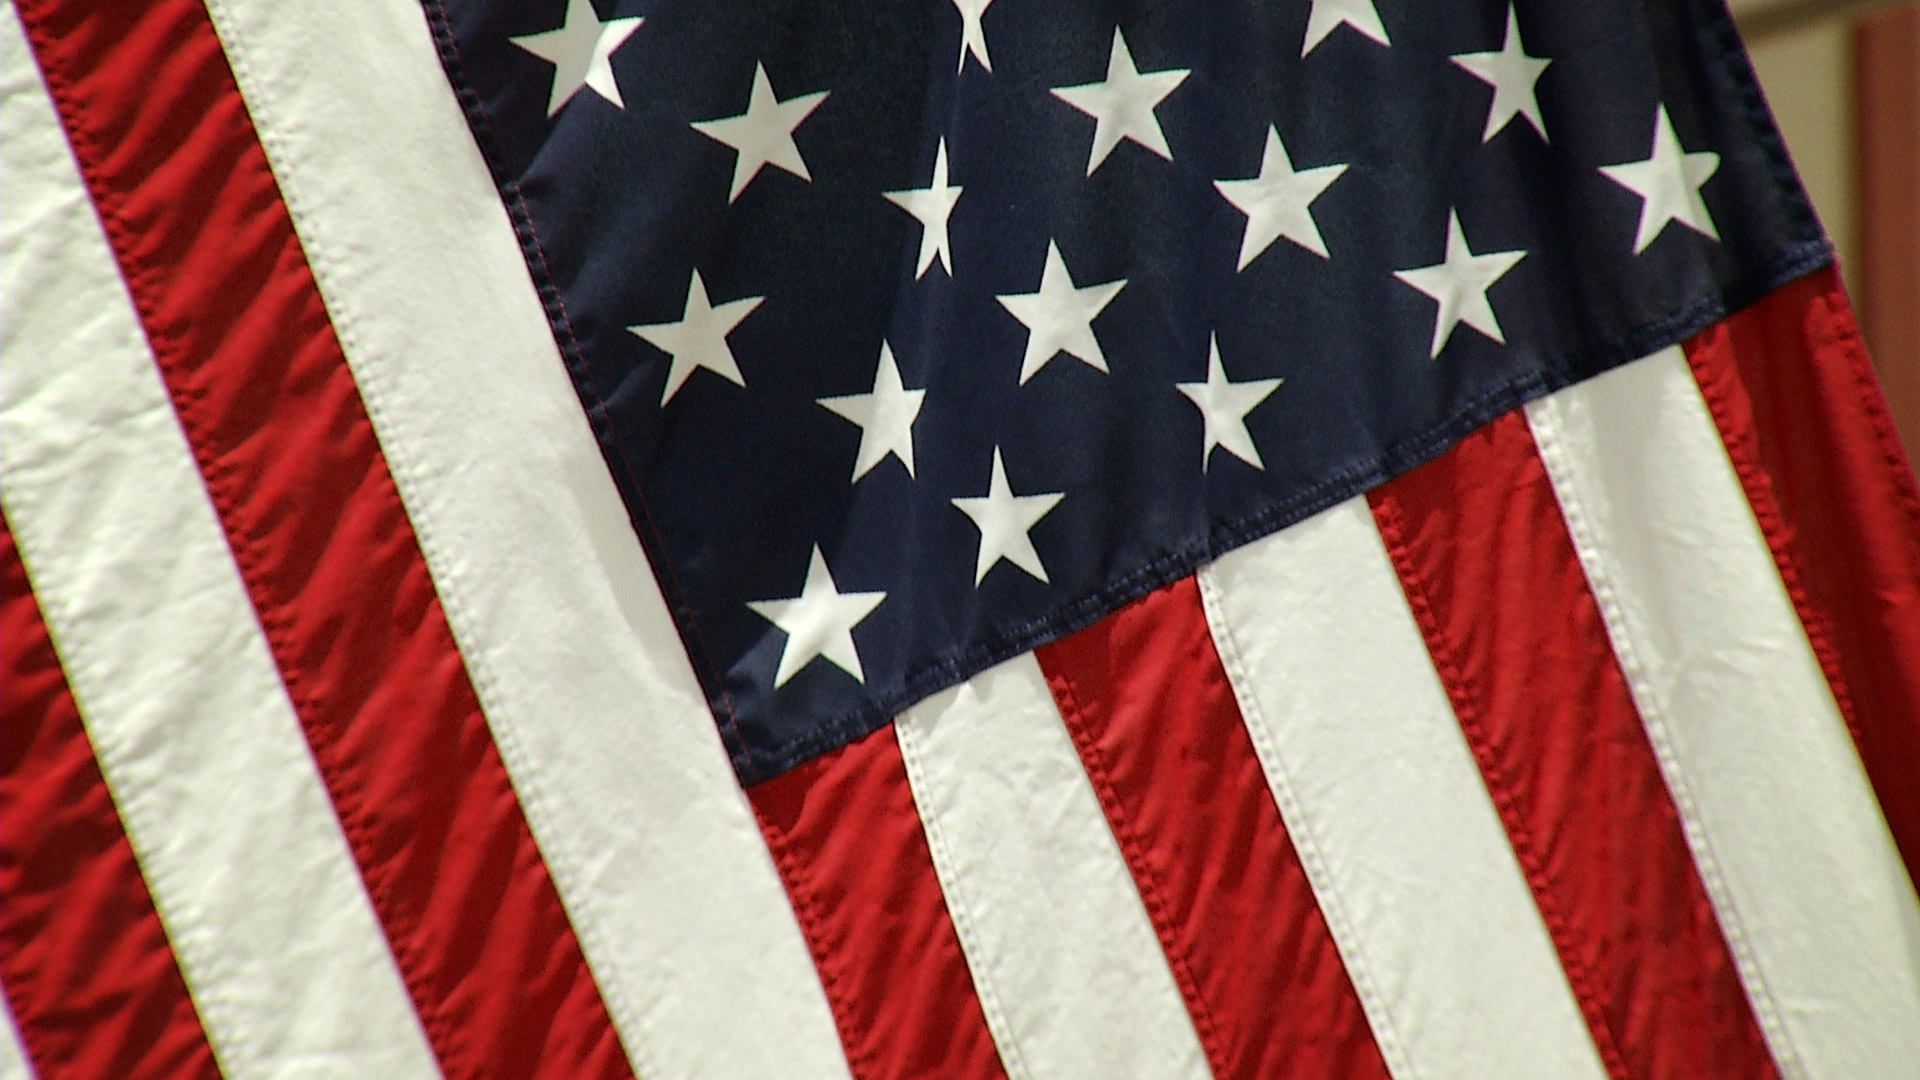 File image of the American flag.